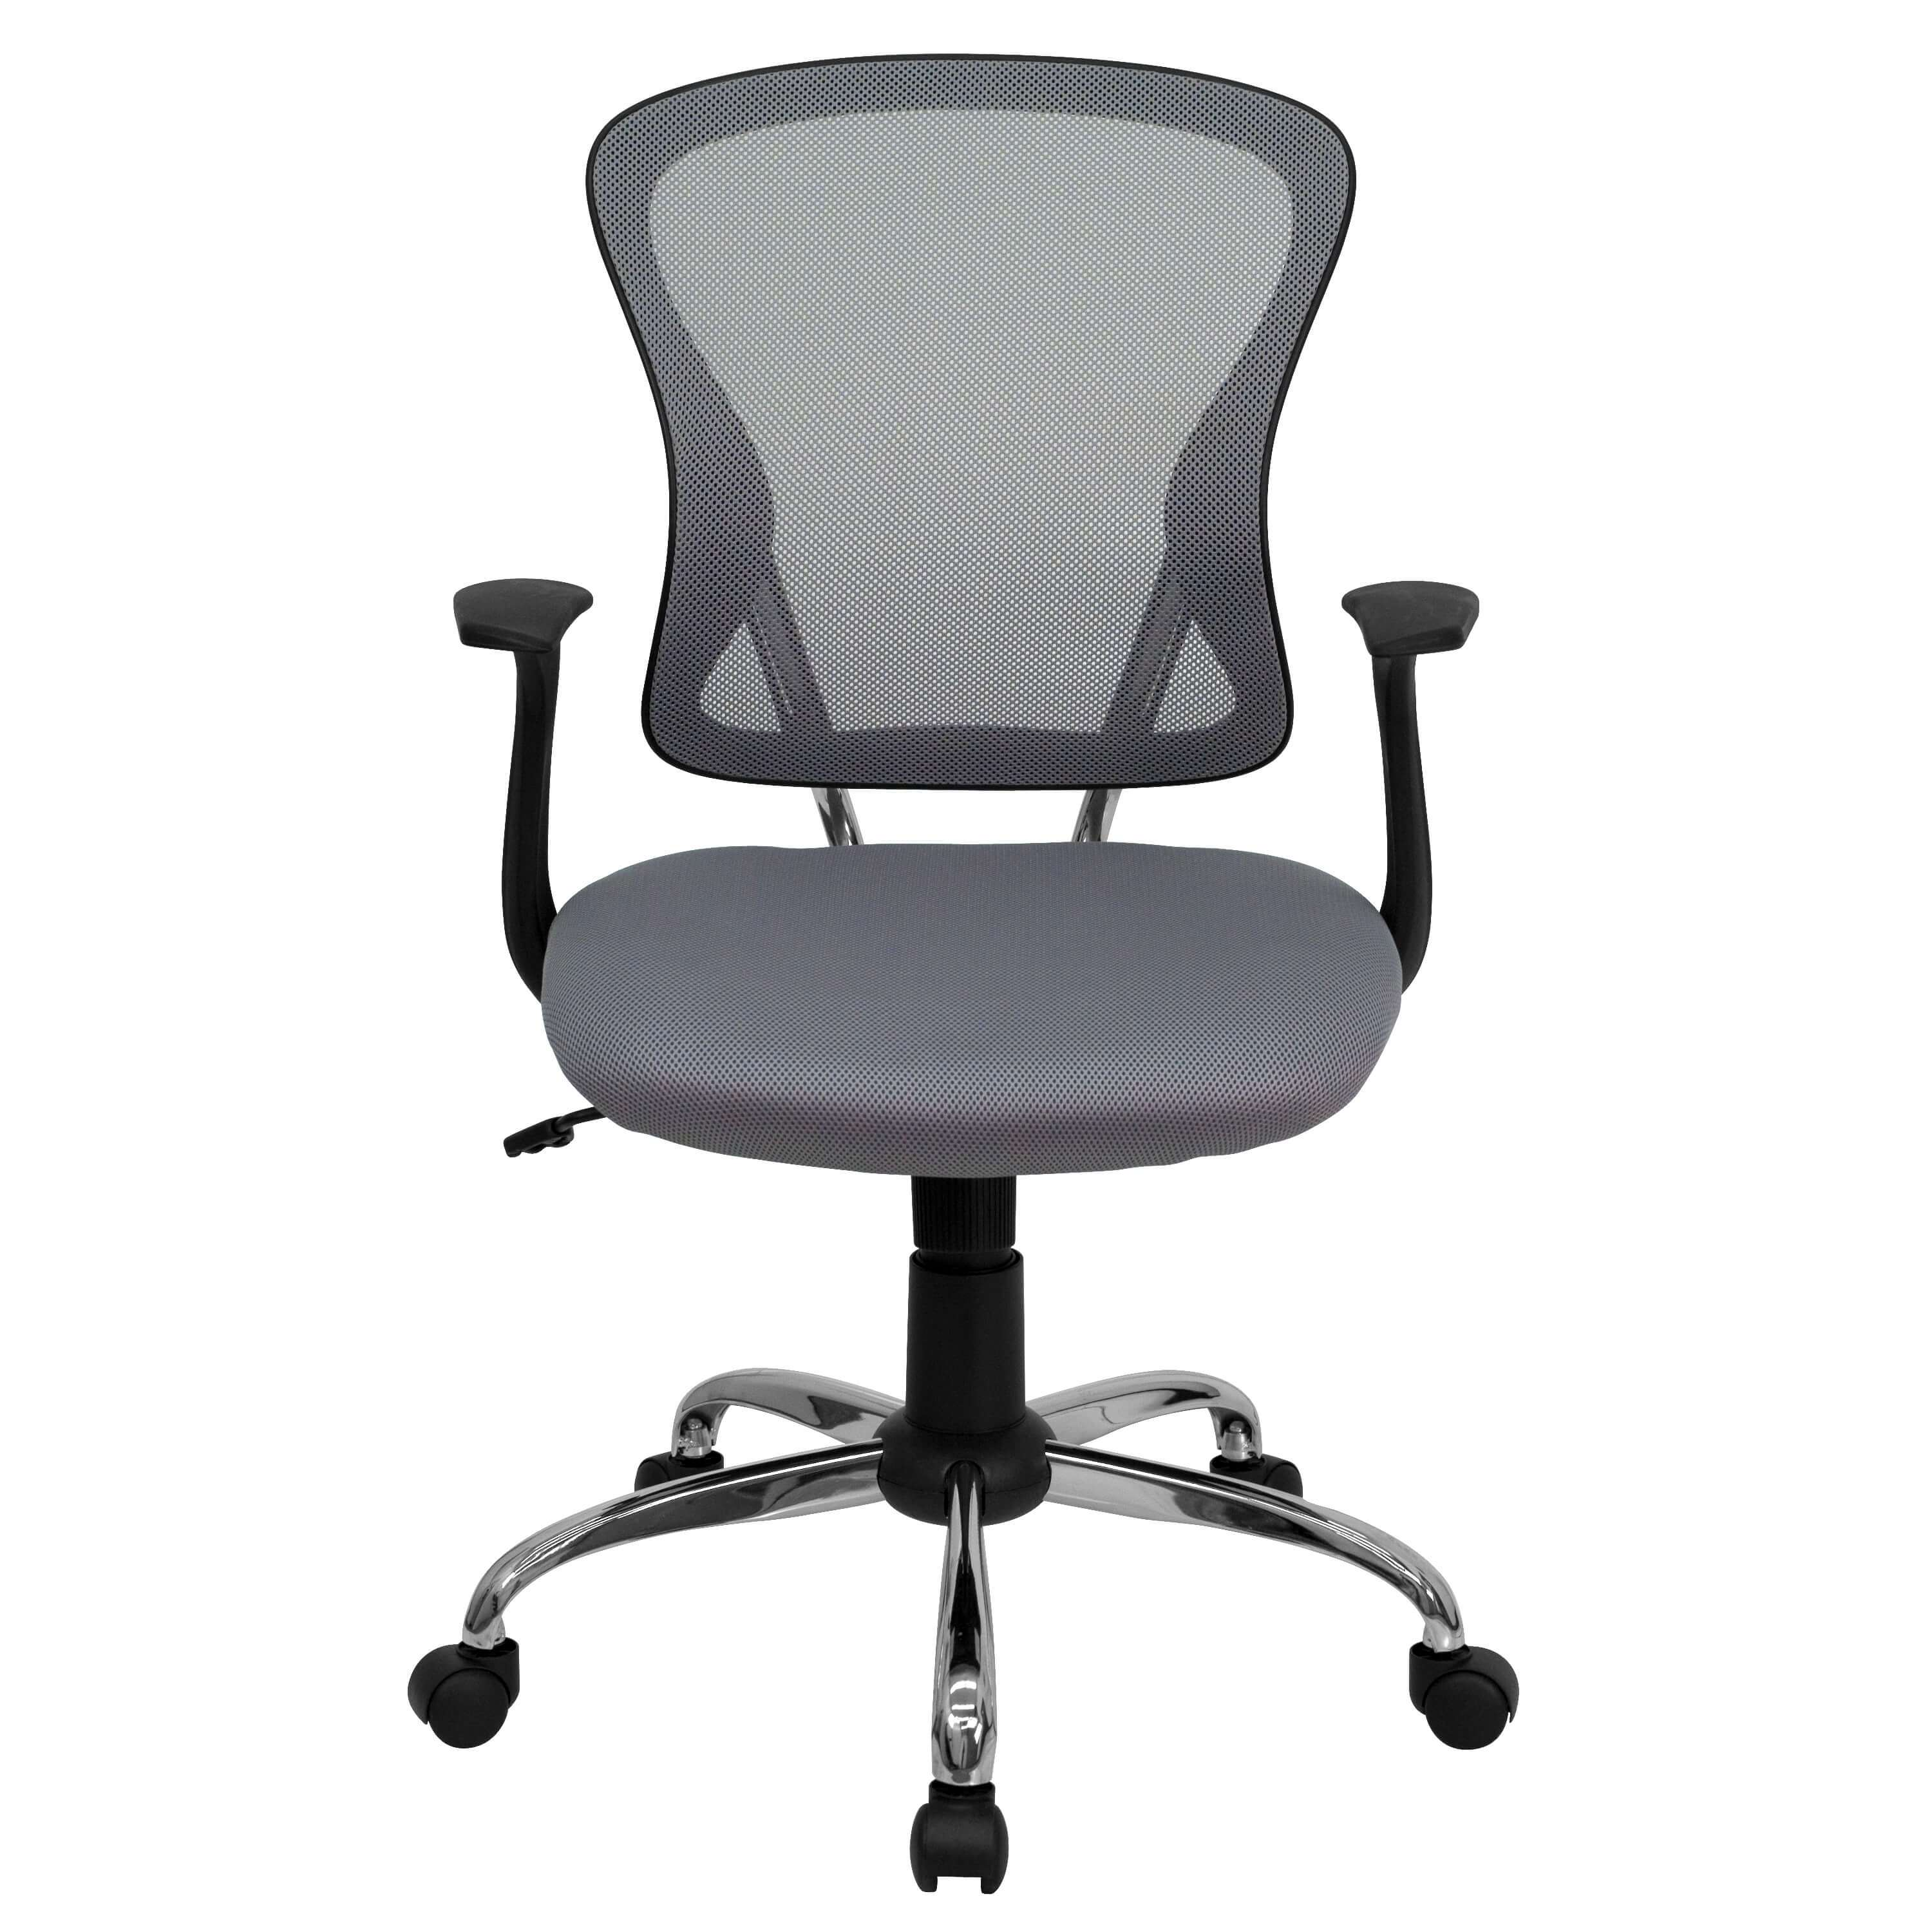 Colorful desk chairs CUB H 8369F GY GG FLA